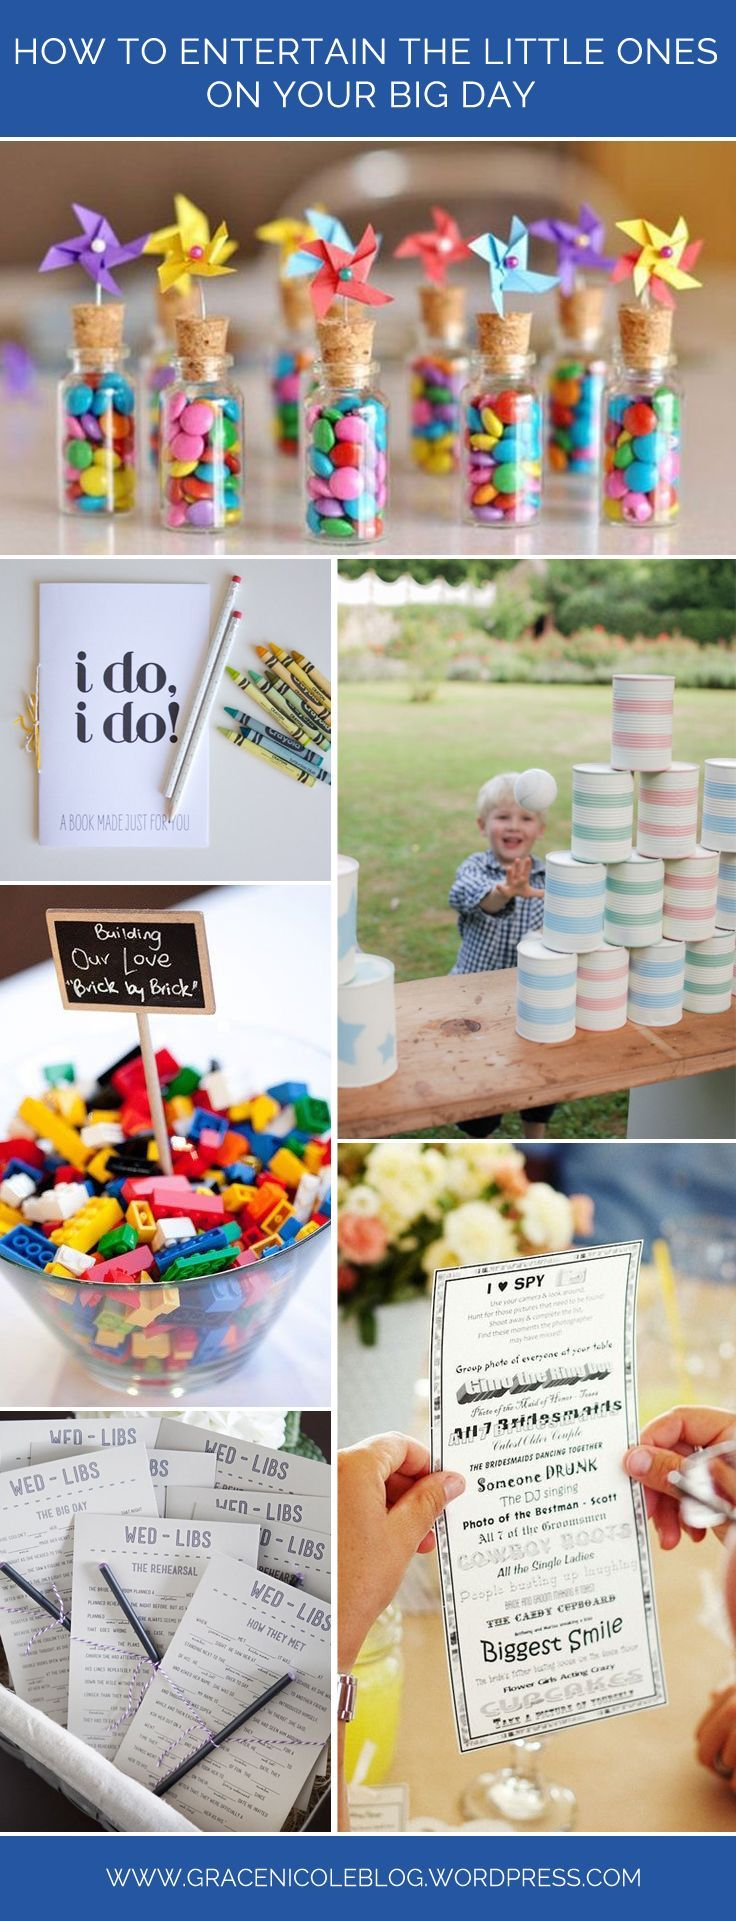 How to Entertain the little ones on your big day. A guide to keeping children happy on your wedding day. Activities, games, booklets and sweets to keep the kids smiling all day long! Check out the blog for more wedding inspiration at http://www.gracenicoleblog.wordpress.com